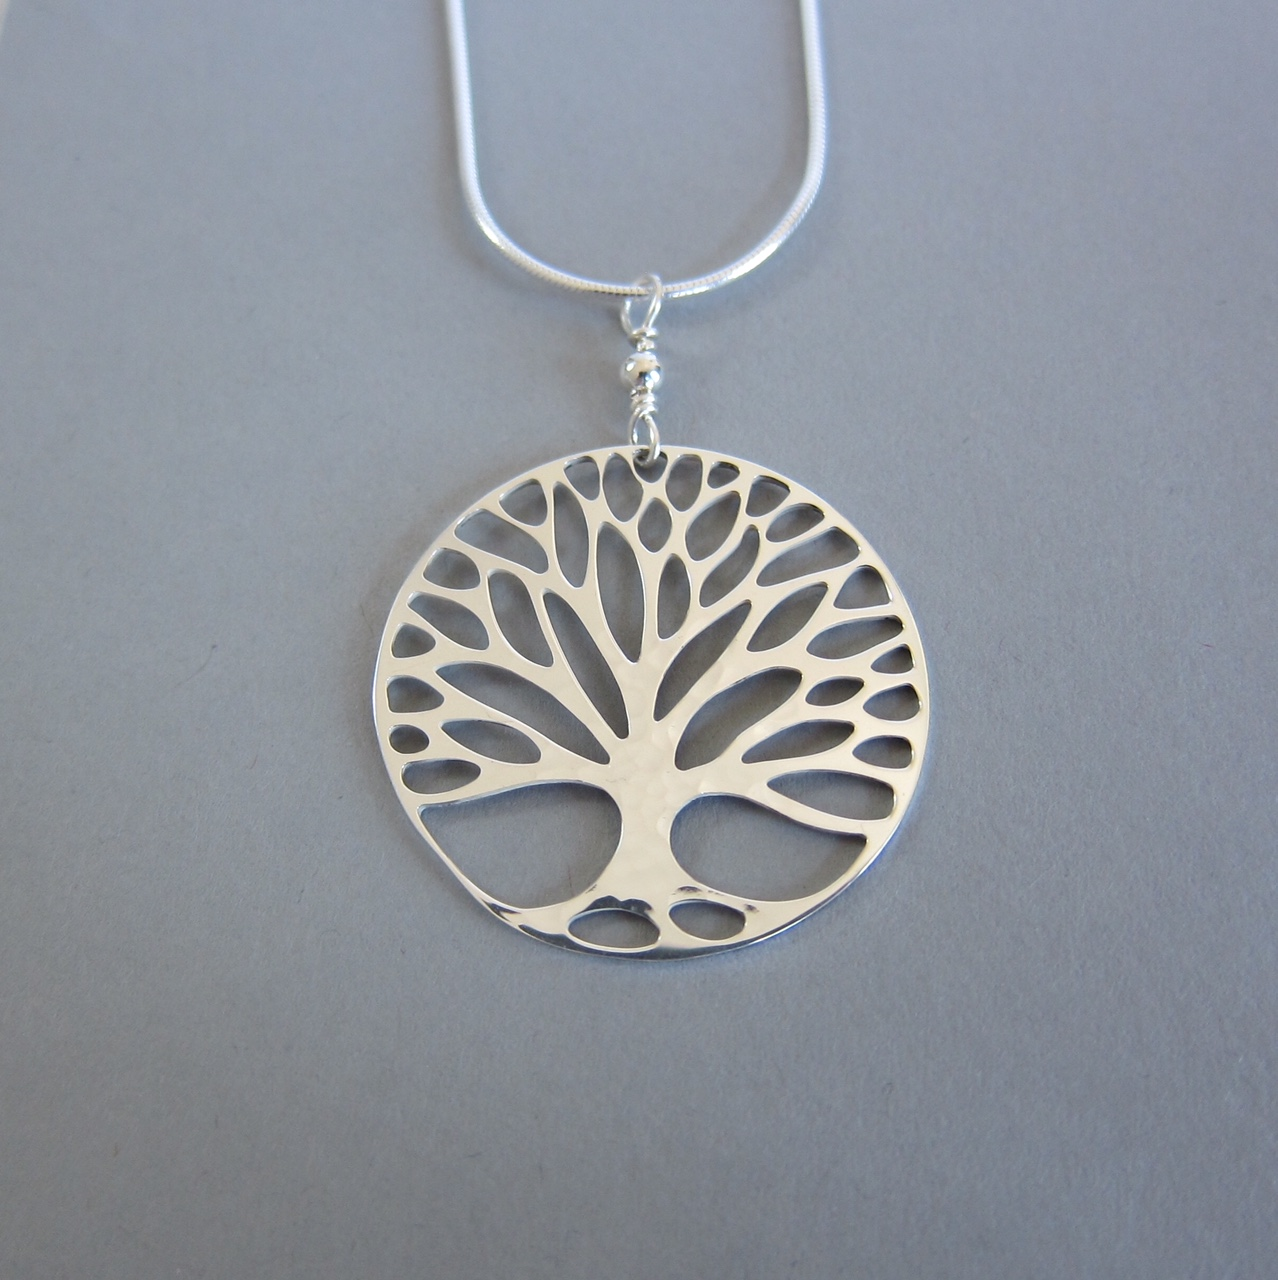 Marcia Dean - I love trees and making things! I fabricate my original design jewelry under skylights in my airy studio and fulfill several roles at the co-op which provides my work life with a balance of solitude and community, variety and routine, creativity and concrete action.My jewelry is made with gold and silver, sometimes together, and often includes opals, each one offering a unique array of brilliantly shifting colors.I also take great pleasure in creating contemporary quilts. The entire process satisfies me from surface design to meditative hand quilting.